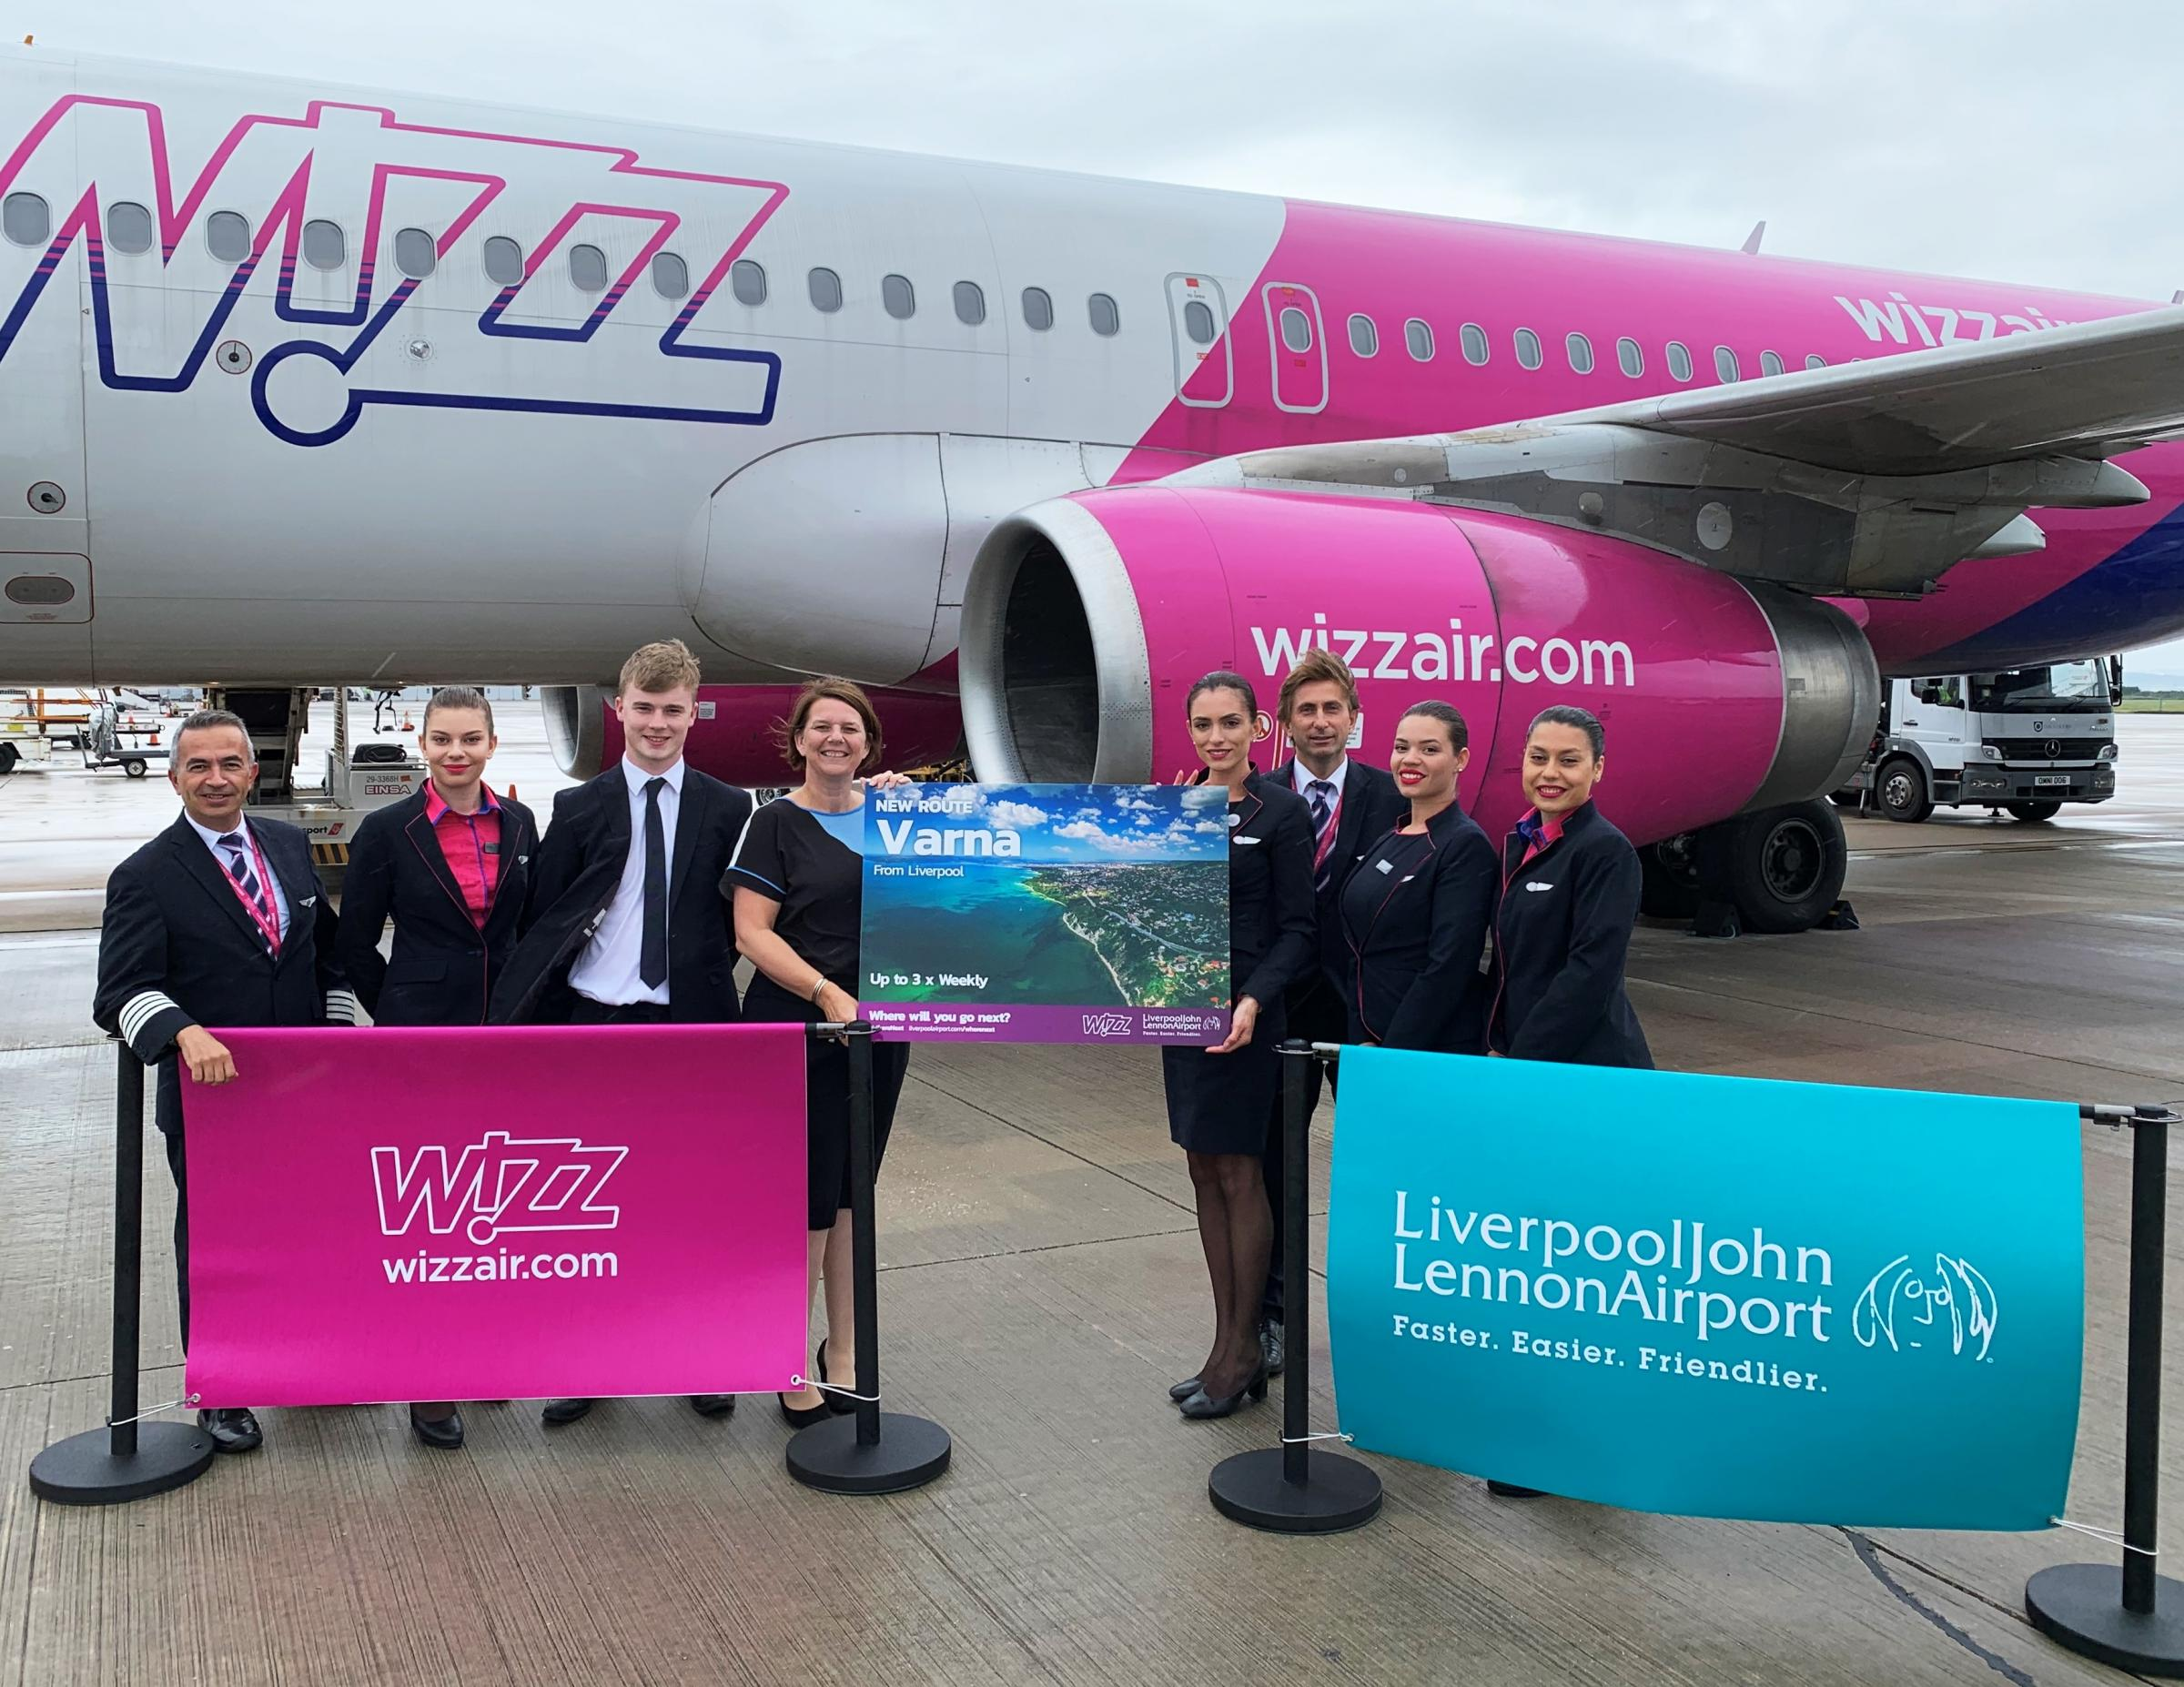 New Wizz Air flights to Black Sea Coast from Liverpool John Lennon Airport